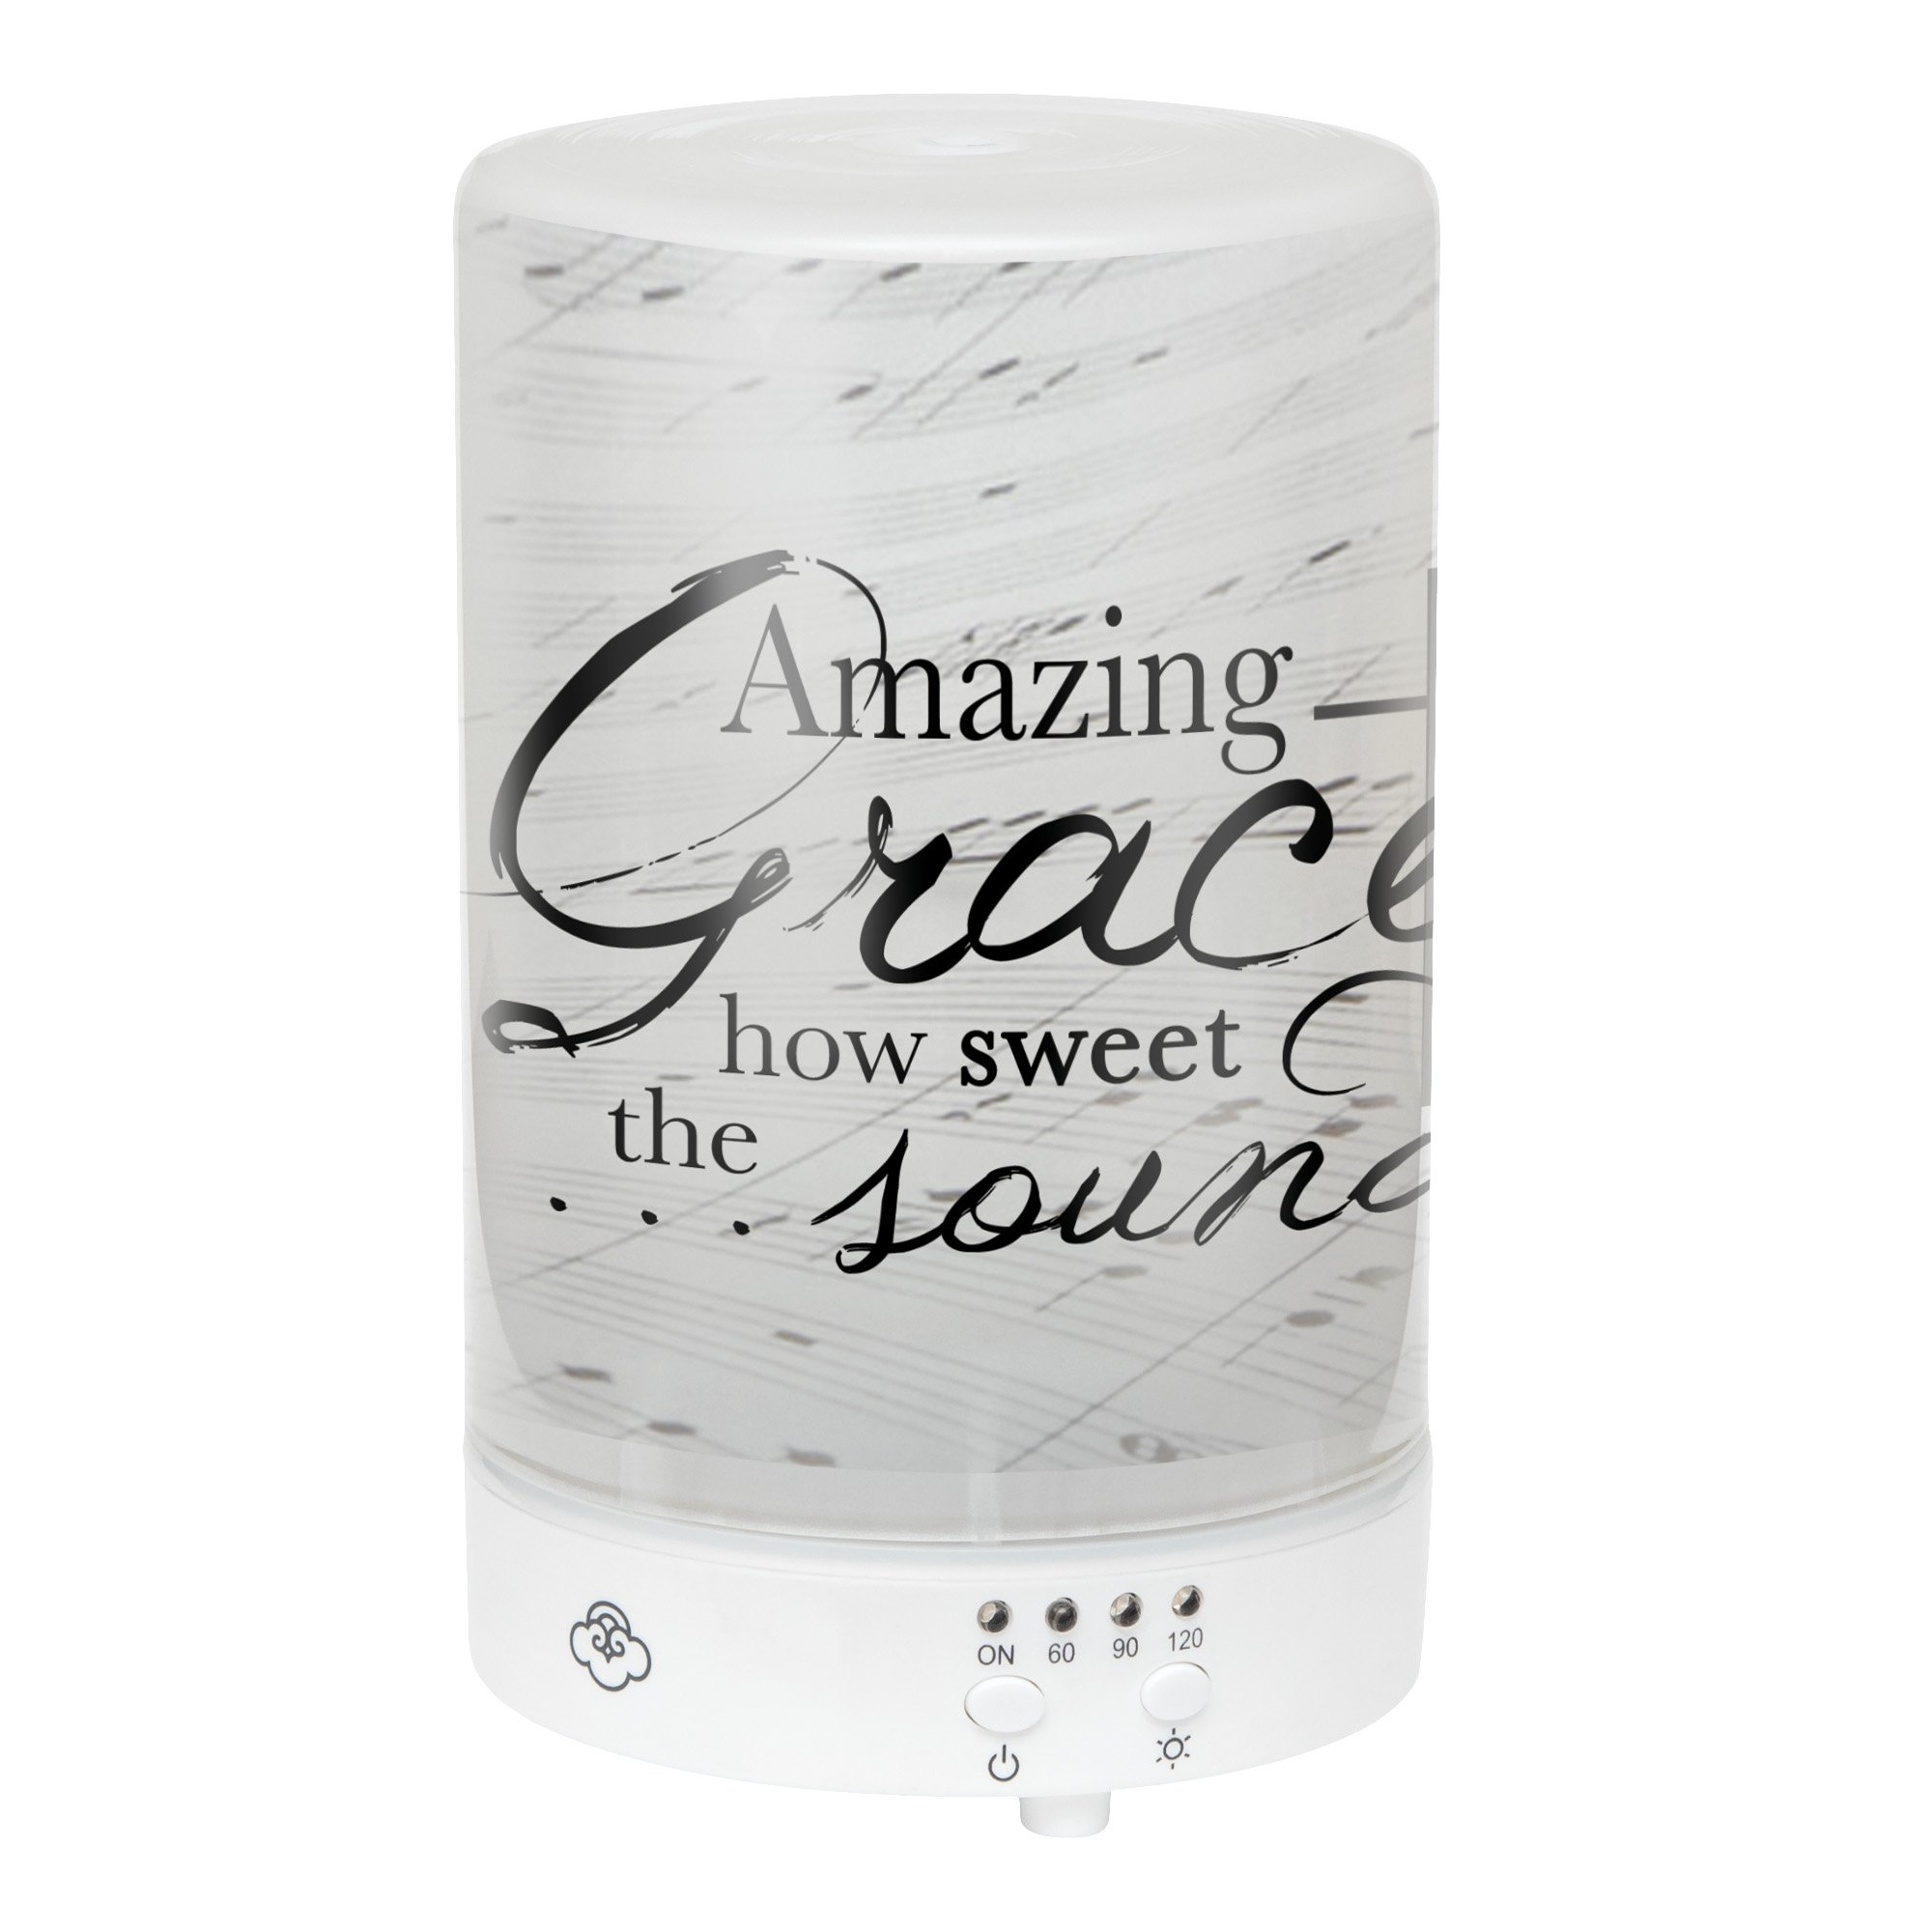 Elanze Designs Amazing Grace How Sweet The Sound Frosted Glass 8 Color LED Light Essential Oil Diffuser by Elanze Designs